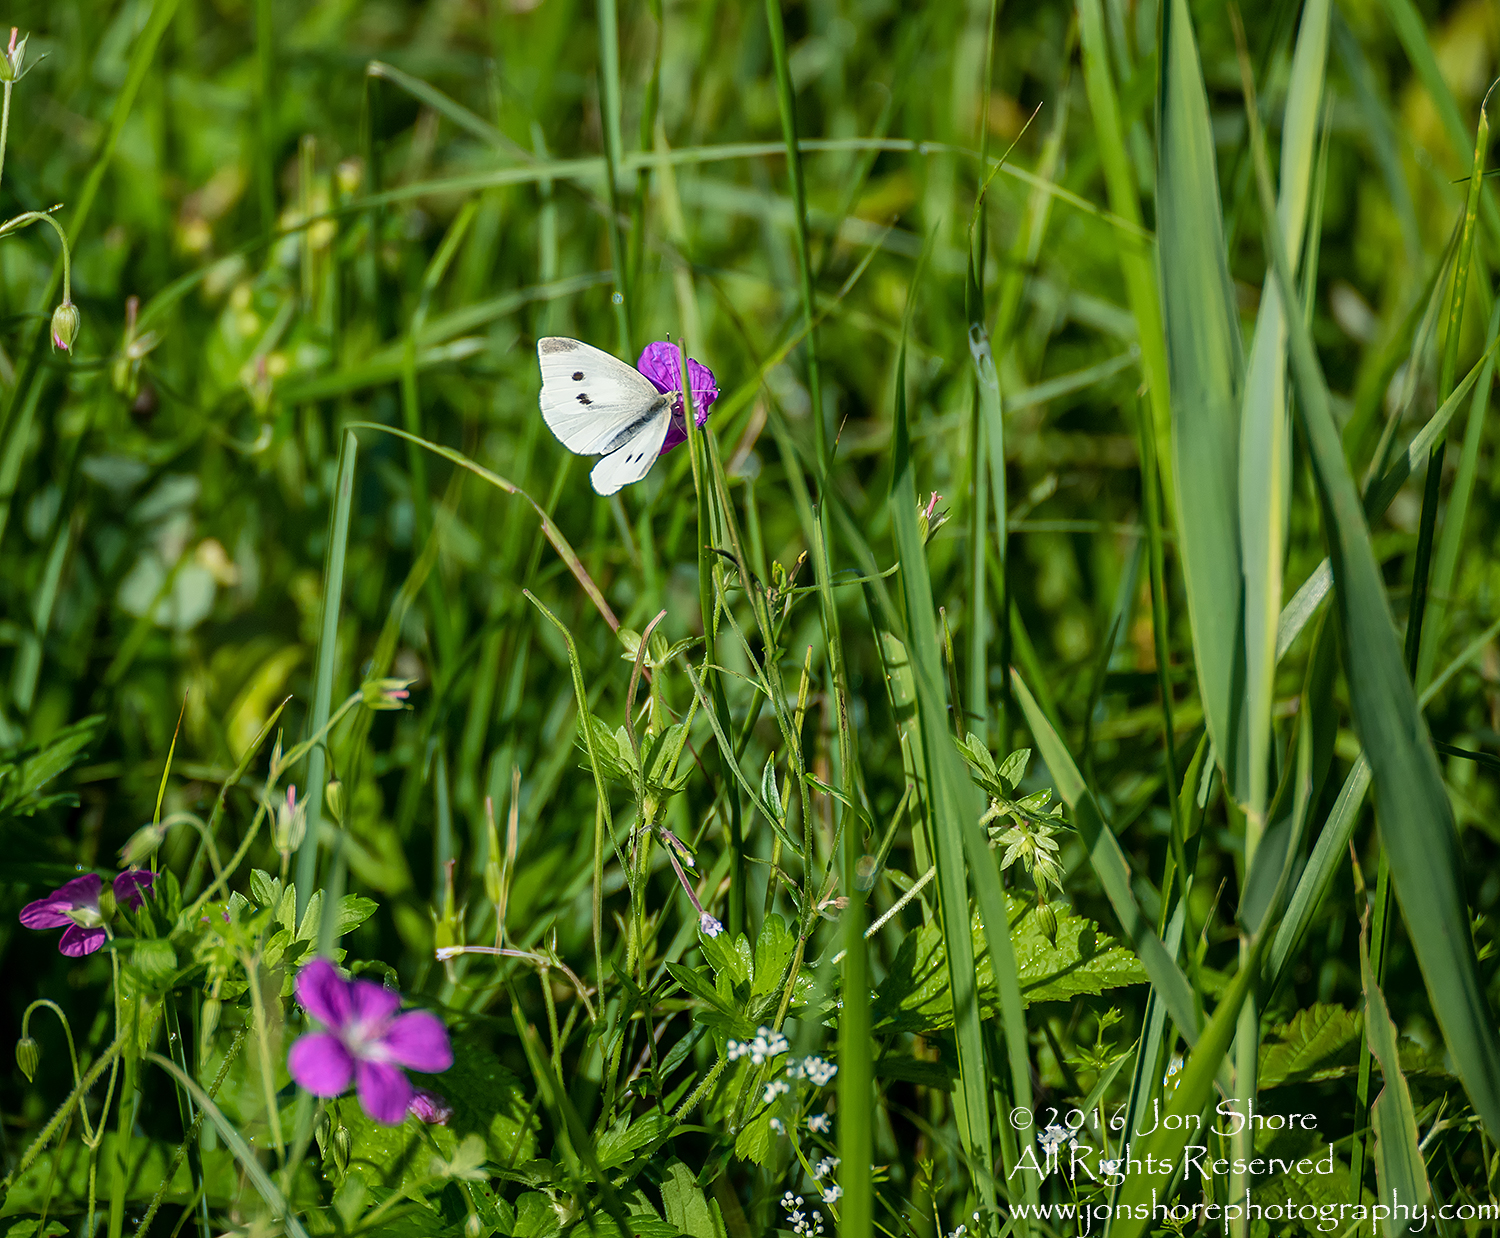 Butterfly on flower Latgale. Tamron 300mm